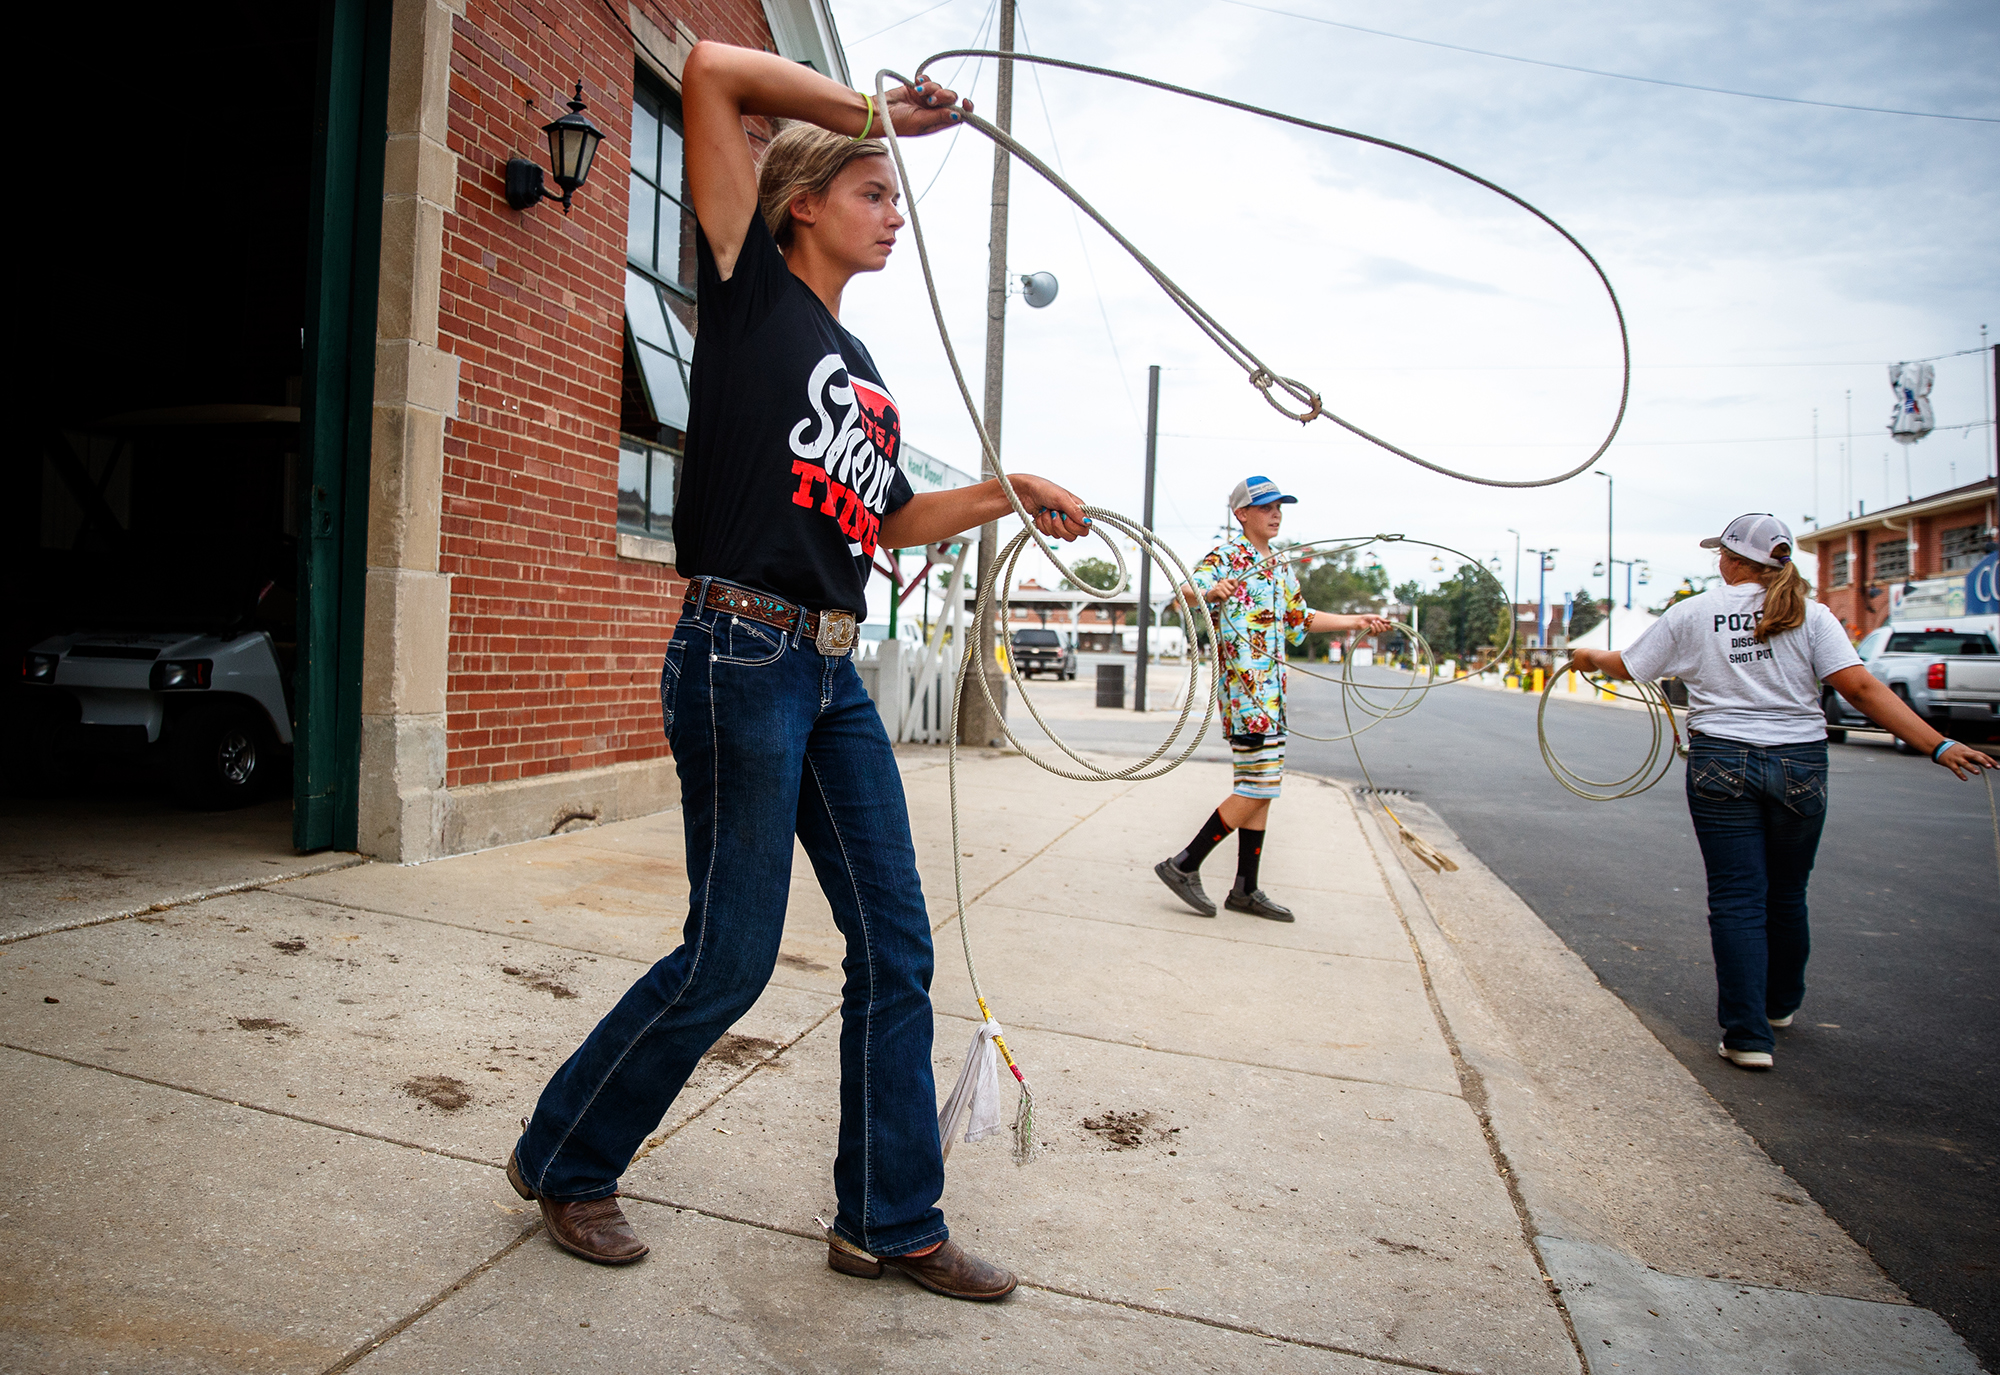 Audrey Breen, 12, of Newark, Ill., left, practices her roping skills along with Duncan Smith, 13, of Macomb, Ill., and Zoey Pozen, 13, of Elburn, Ill., right, as they wind down from of the daily activities outside the barns during the week of the Junior Horse and Pony Show on the Illinois State Fairgrounds, Wednesday, July 25, 2018, in Springfield, Ill. Breen and Duncan are competing in various horsemanship contests with other youth from across the state during the week long event which has daily events through Sunday. [Justin L. Fowler/The State Journal-Register]